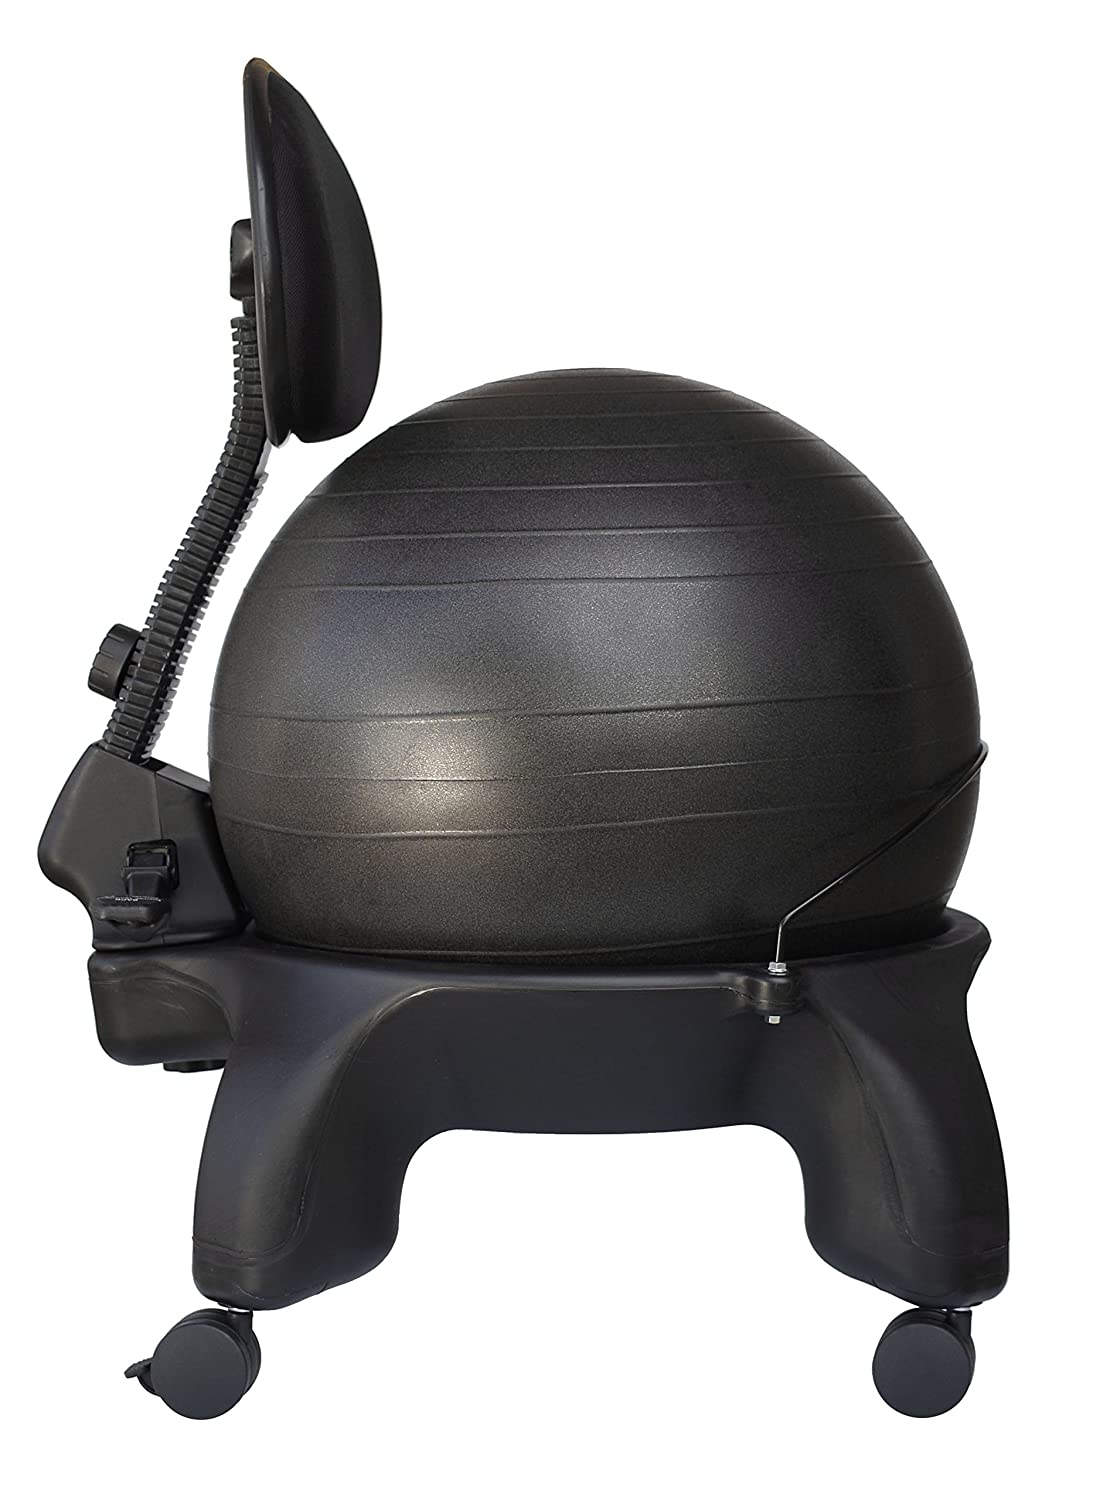 amazon gym ball chair covers rentals calgary the 4 best exercise chairs  2018 reviews and top picks